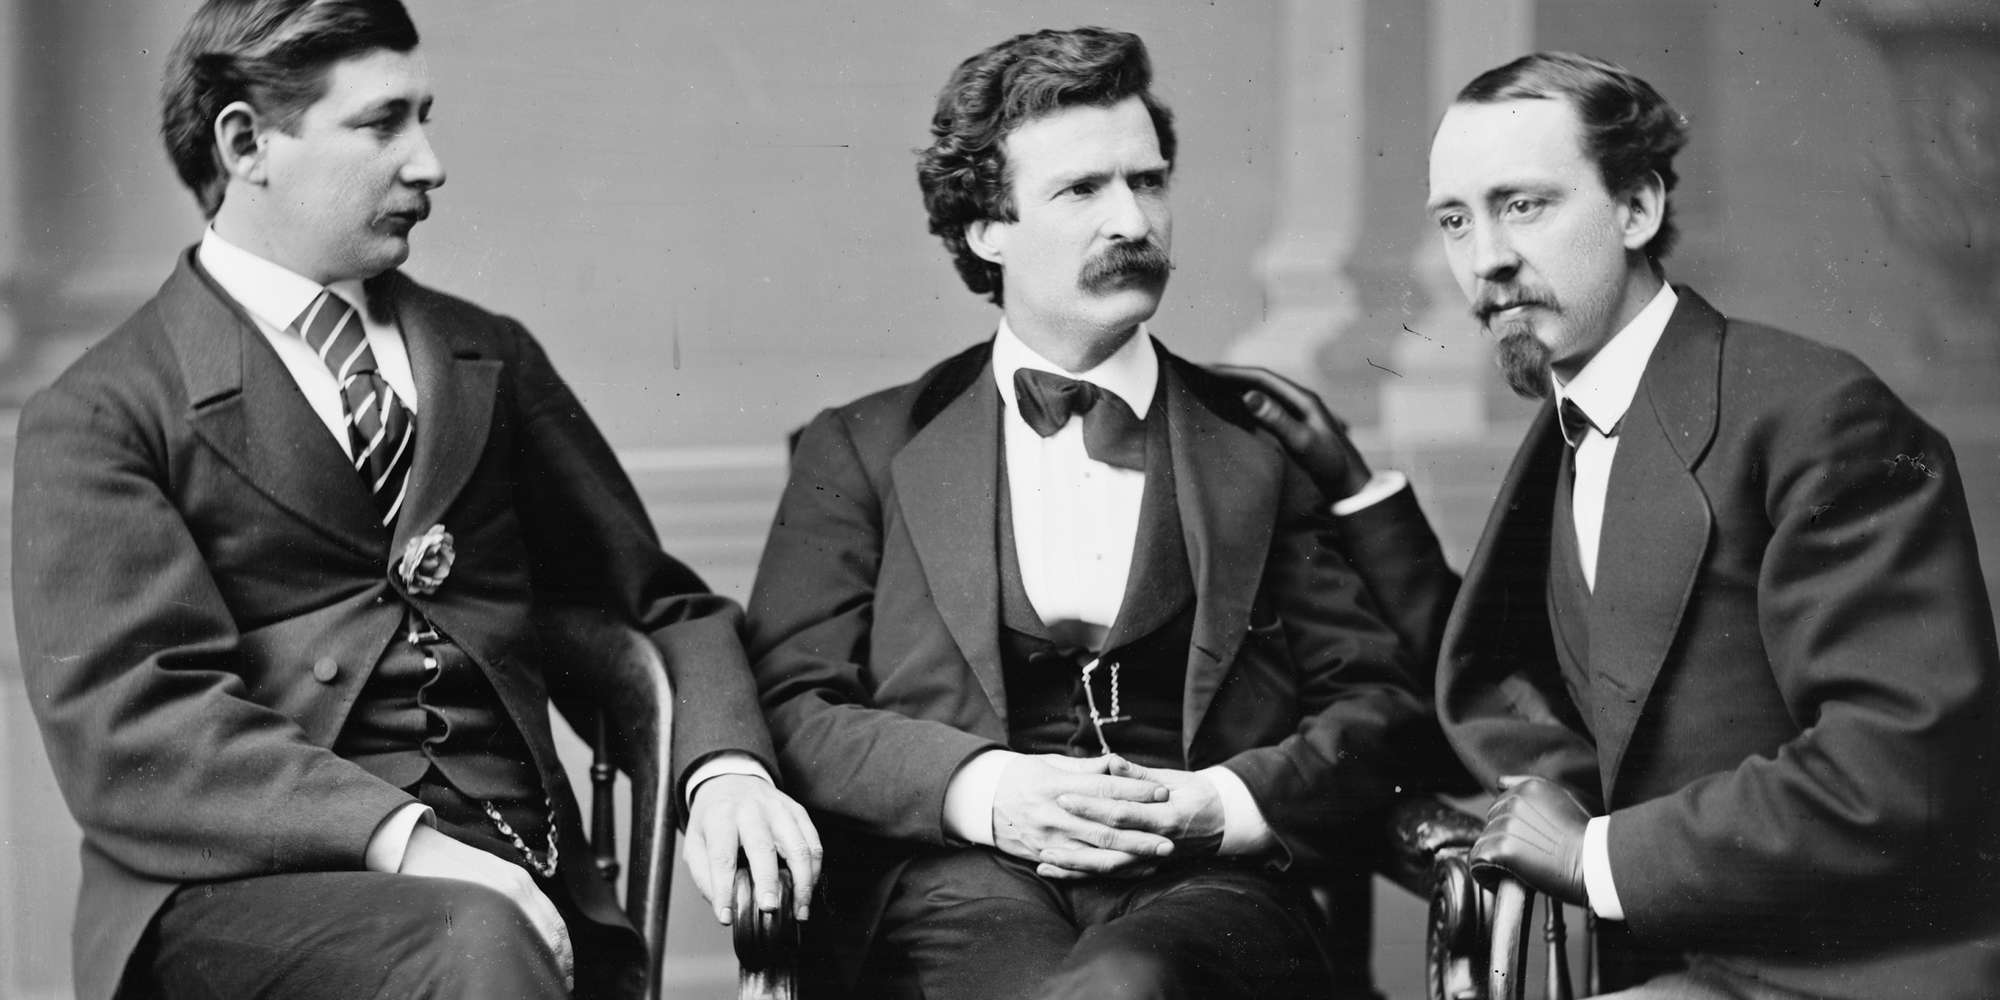 Mark Twain, George Alfred Townsend, and David Gray